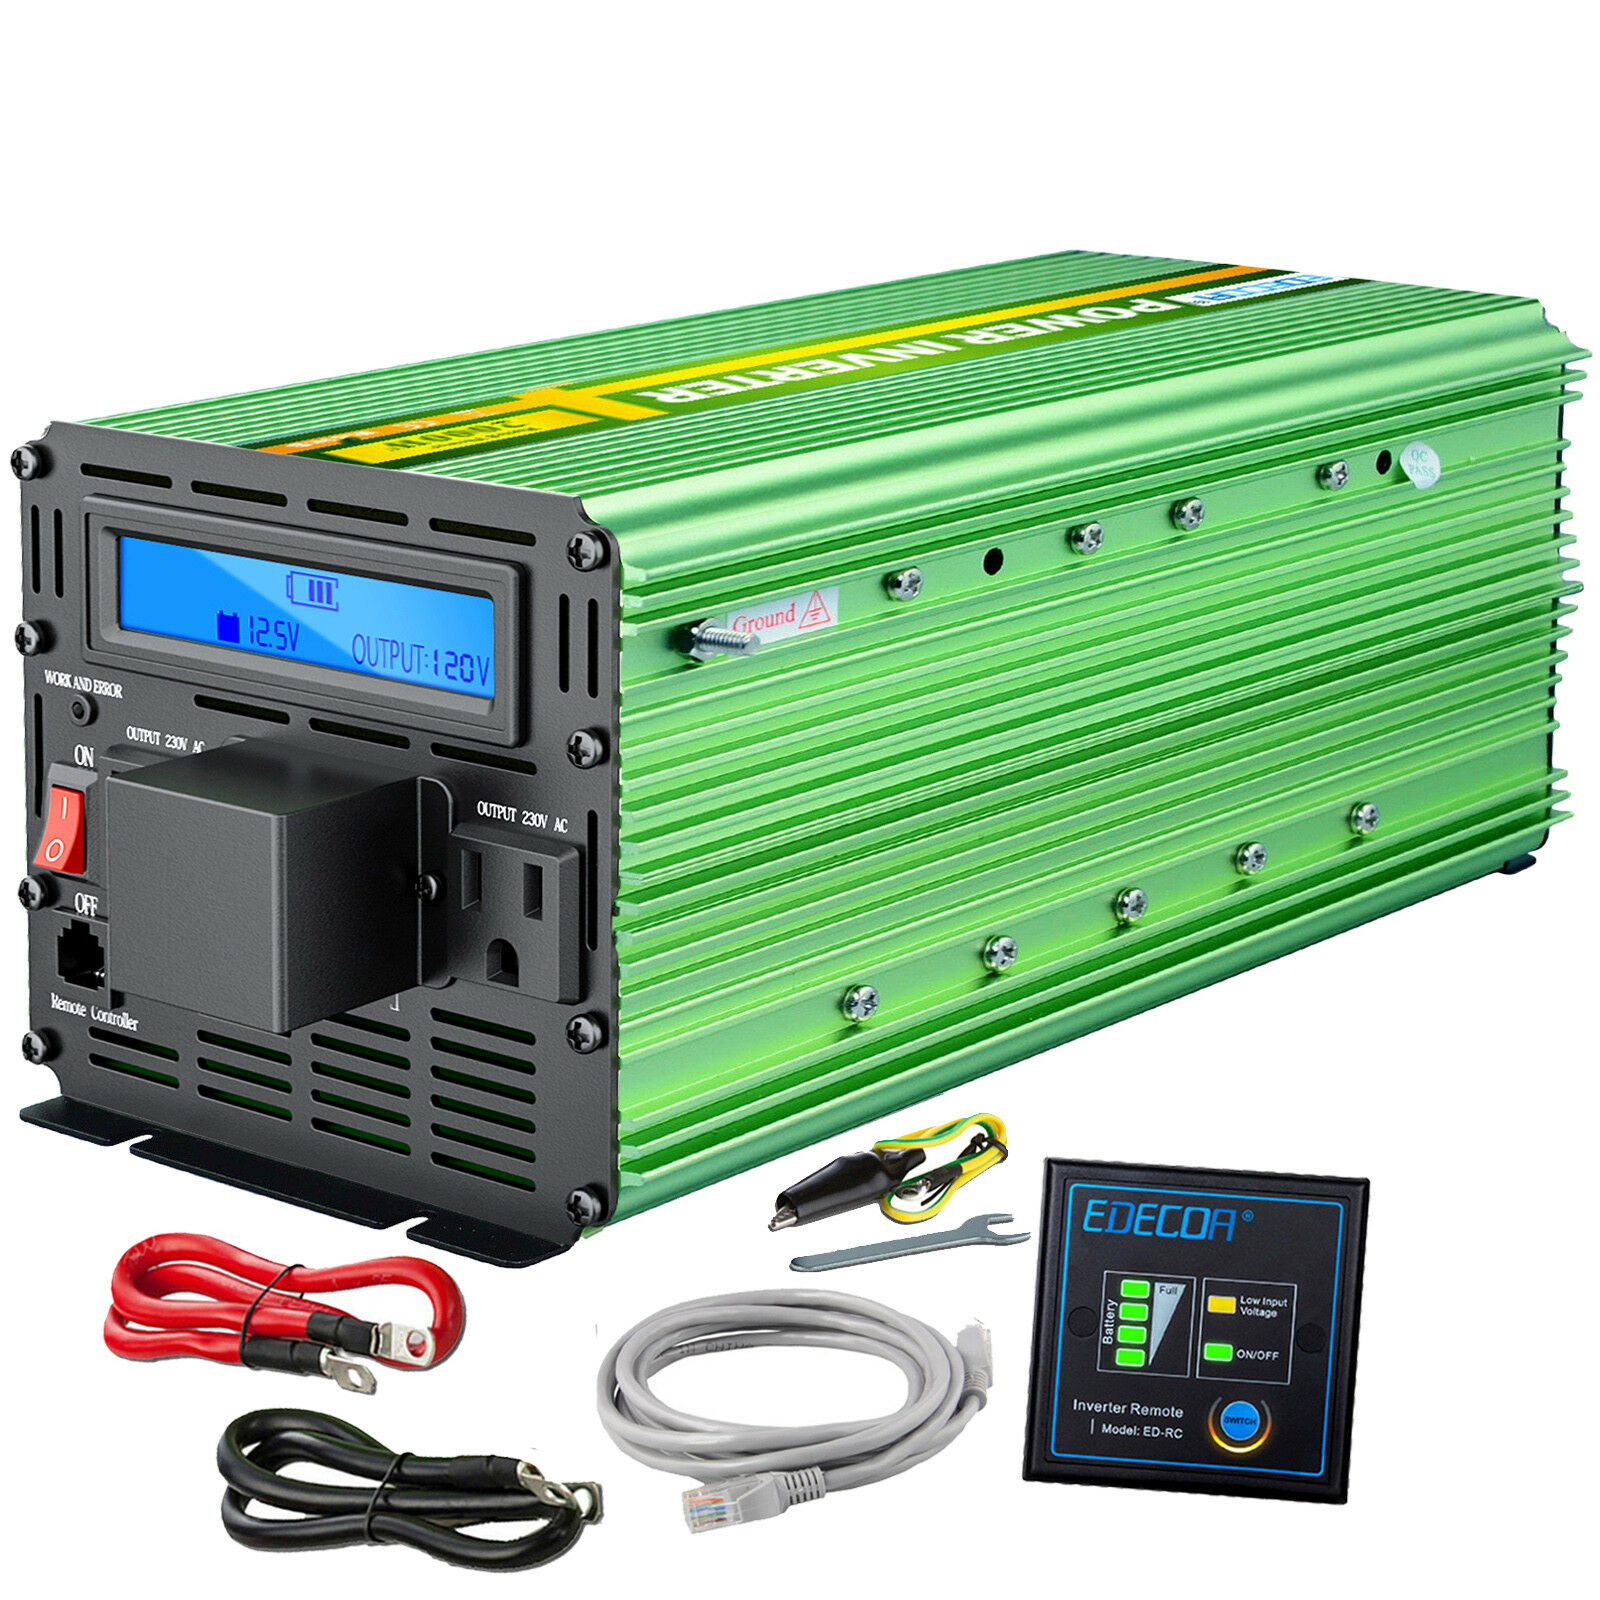 Simple Low Power Inverter To Convert 12v Dc 120v Ac How Much Edecoa 3000 Watt 6000w Lcd Cables Norton Secured Powered By Verisign